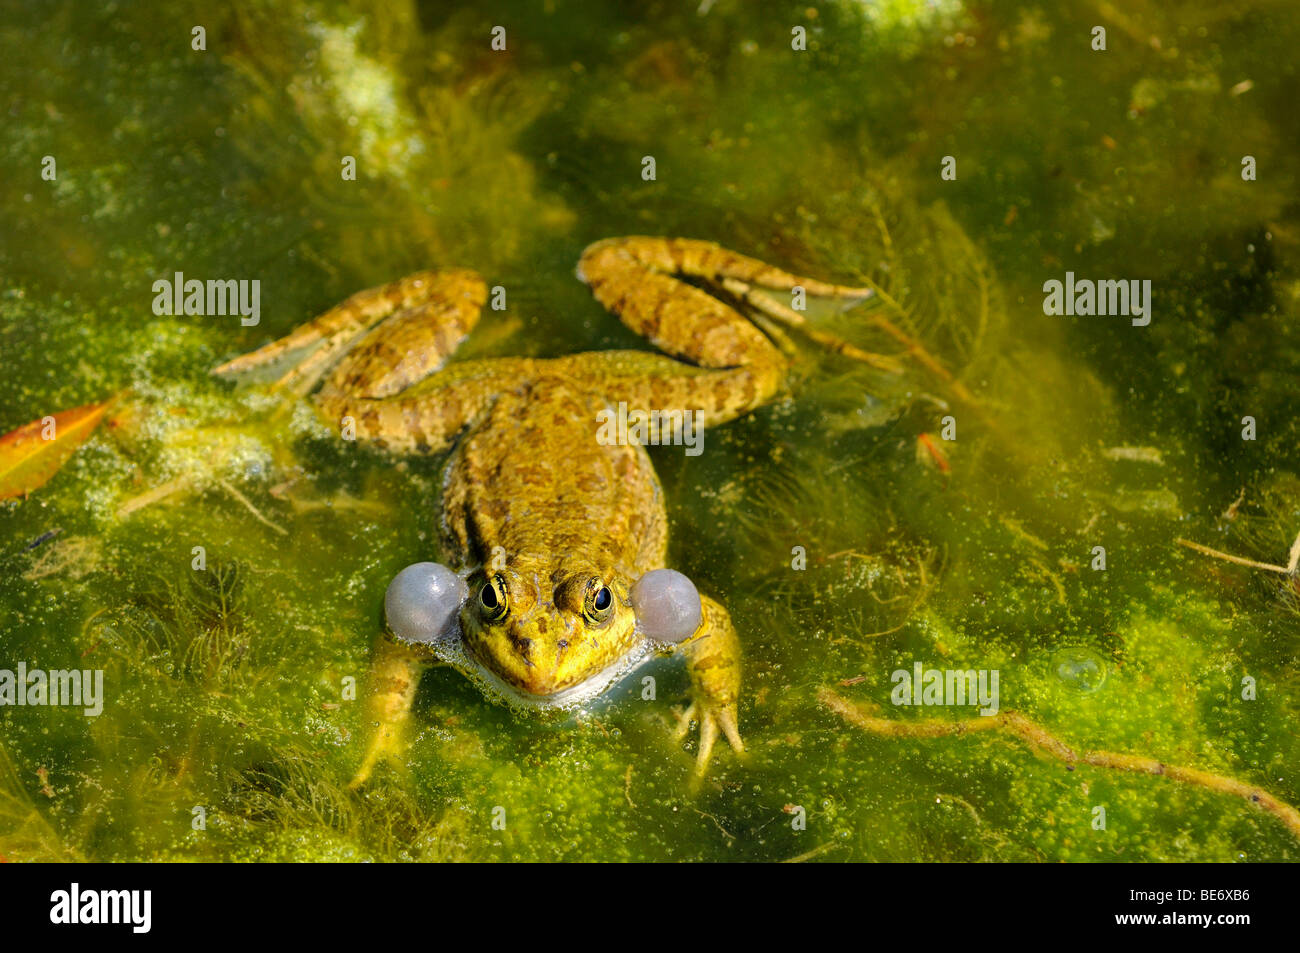 Male Pond Frog or Edible Frog (Rana kl. Esculenta) - Stock Image